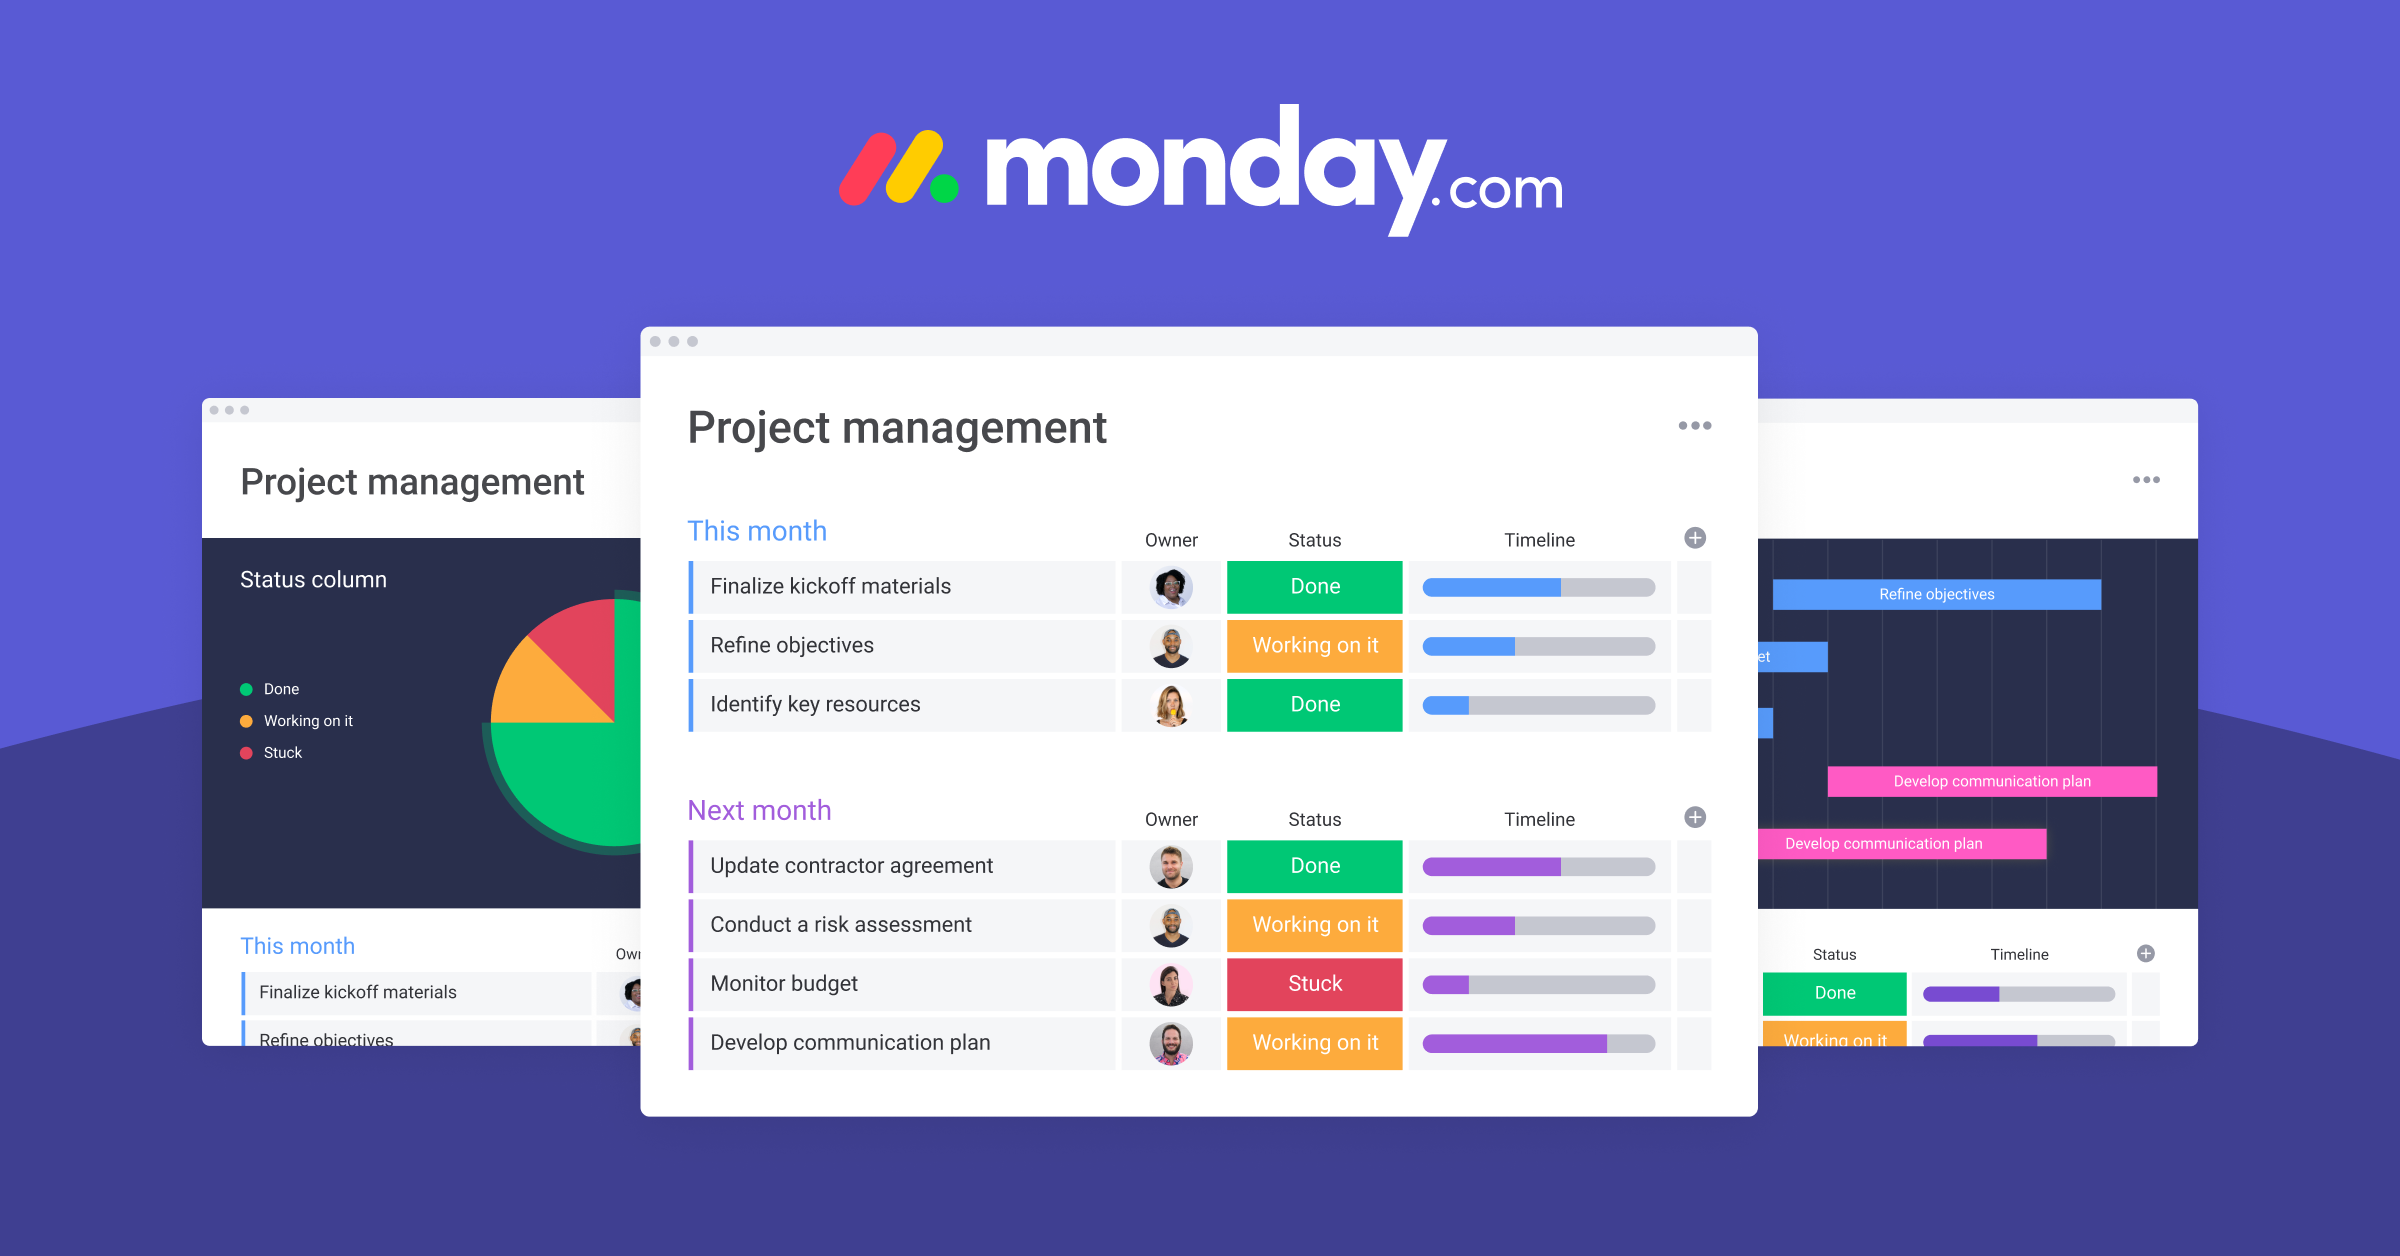 Monday Monday is a cloud-based project management tool that provides a different organization approach using colours and placement. This is crucial to view and manage a team's dashboards at a glance. It is easy to use and offers support with walkthrough tutorials and regular updates to improve features. Using it, you will be ahead of event scheduling, assigning tasks, calendar, discussion boards and time-tracking in your project management cycle. How It Works Monday Project management software simplifies task management and collaboration. It uses centralized management with colour-coded and visually organized boards to identify who's working on an aspect of a project. This teamwork software Gantt charts allow tracing tasks on projects spanning days and communication management in real-time. The dashboard's visual organization ensures all deadlines are met. With this, the client can be invited to view various steps of the projects. Is It Worth The Price? Monday teamwork software has some notable clients, including Uber, Fiverr, and Adidas. These companies have intensive scheduling and project management needs for their operations. That's why they go for Monday because it maximizes value for each business with tiered subscription plans starting from basic to enterprise subscription. Monday organization software features support every business level and the price is right once you are sure of what your business needs. Unique Selling Points Monday.com is a fully-fledged project management software equipped with the right features to ensure that your teams collaborate efficiently. Once you know what your business requires, leveraging this organization software needs no third-party tools or juggling between applications. It is a comprehensive system to have valuable insights on project status with one swipe of the eyes.